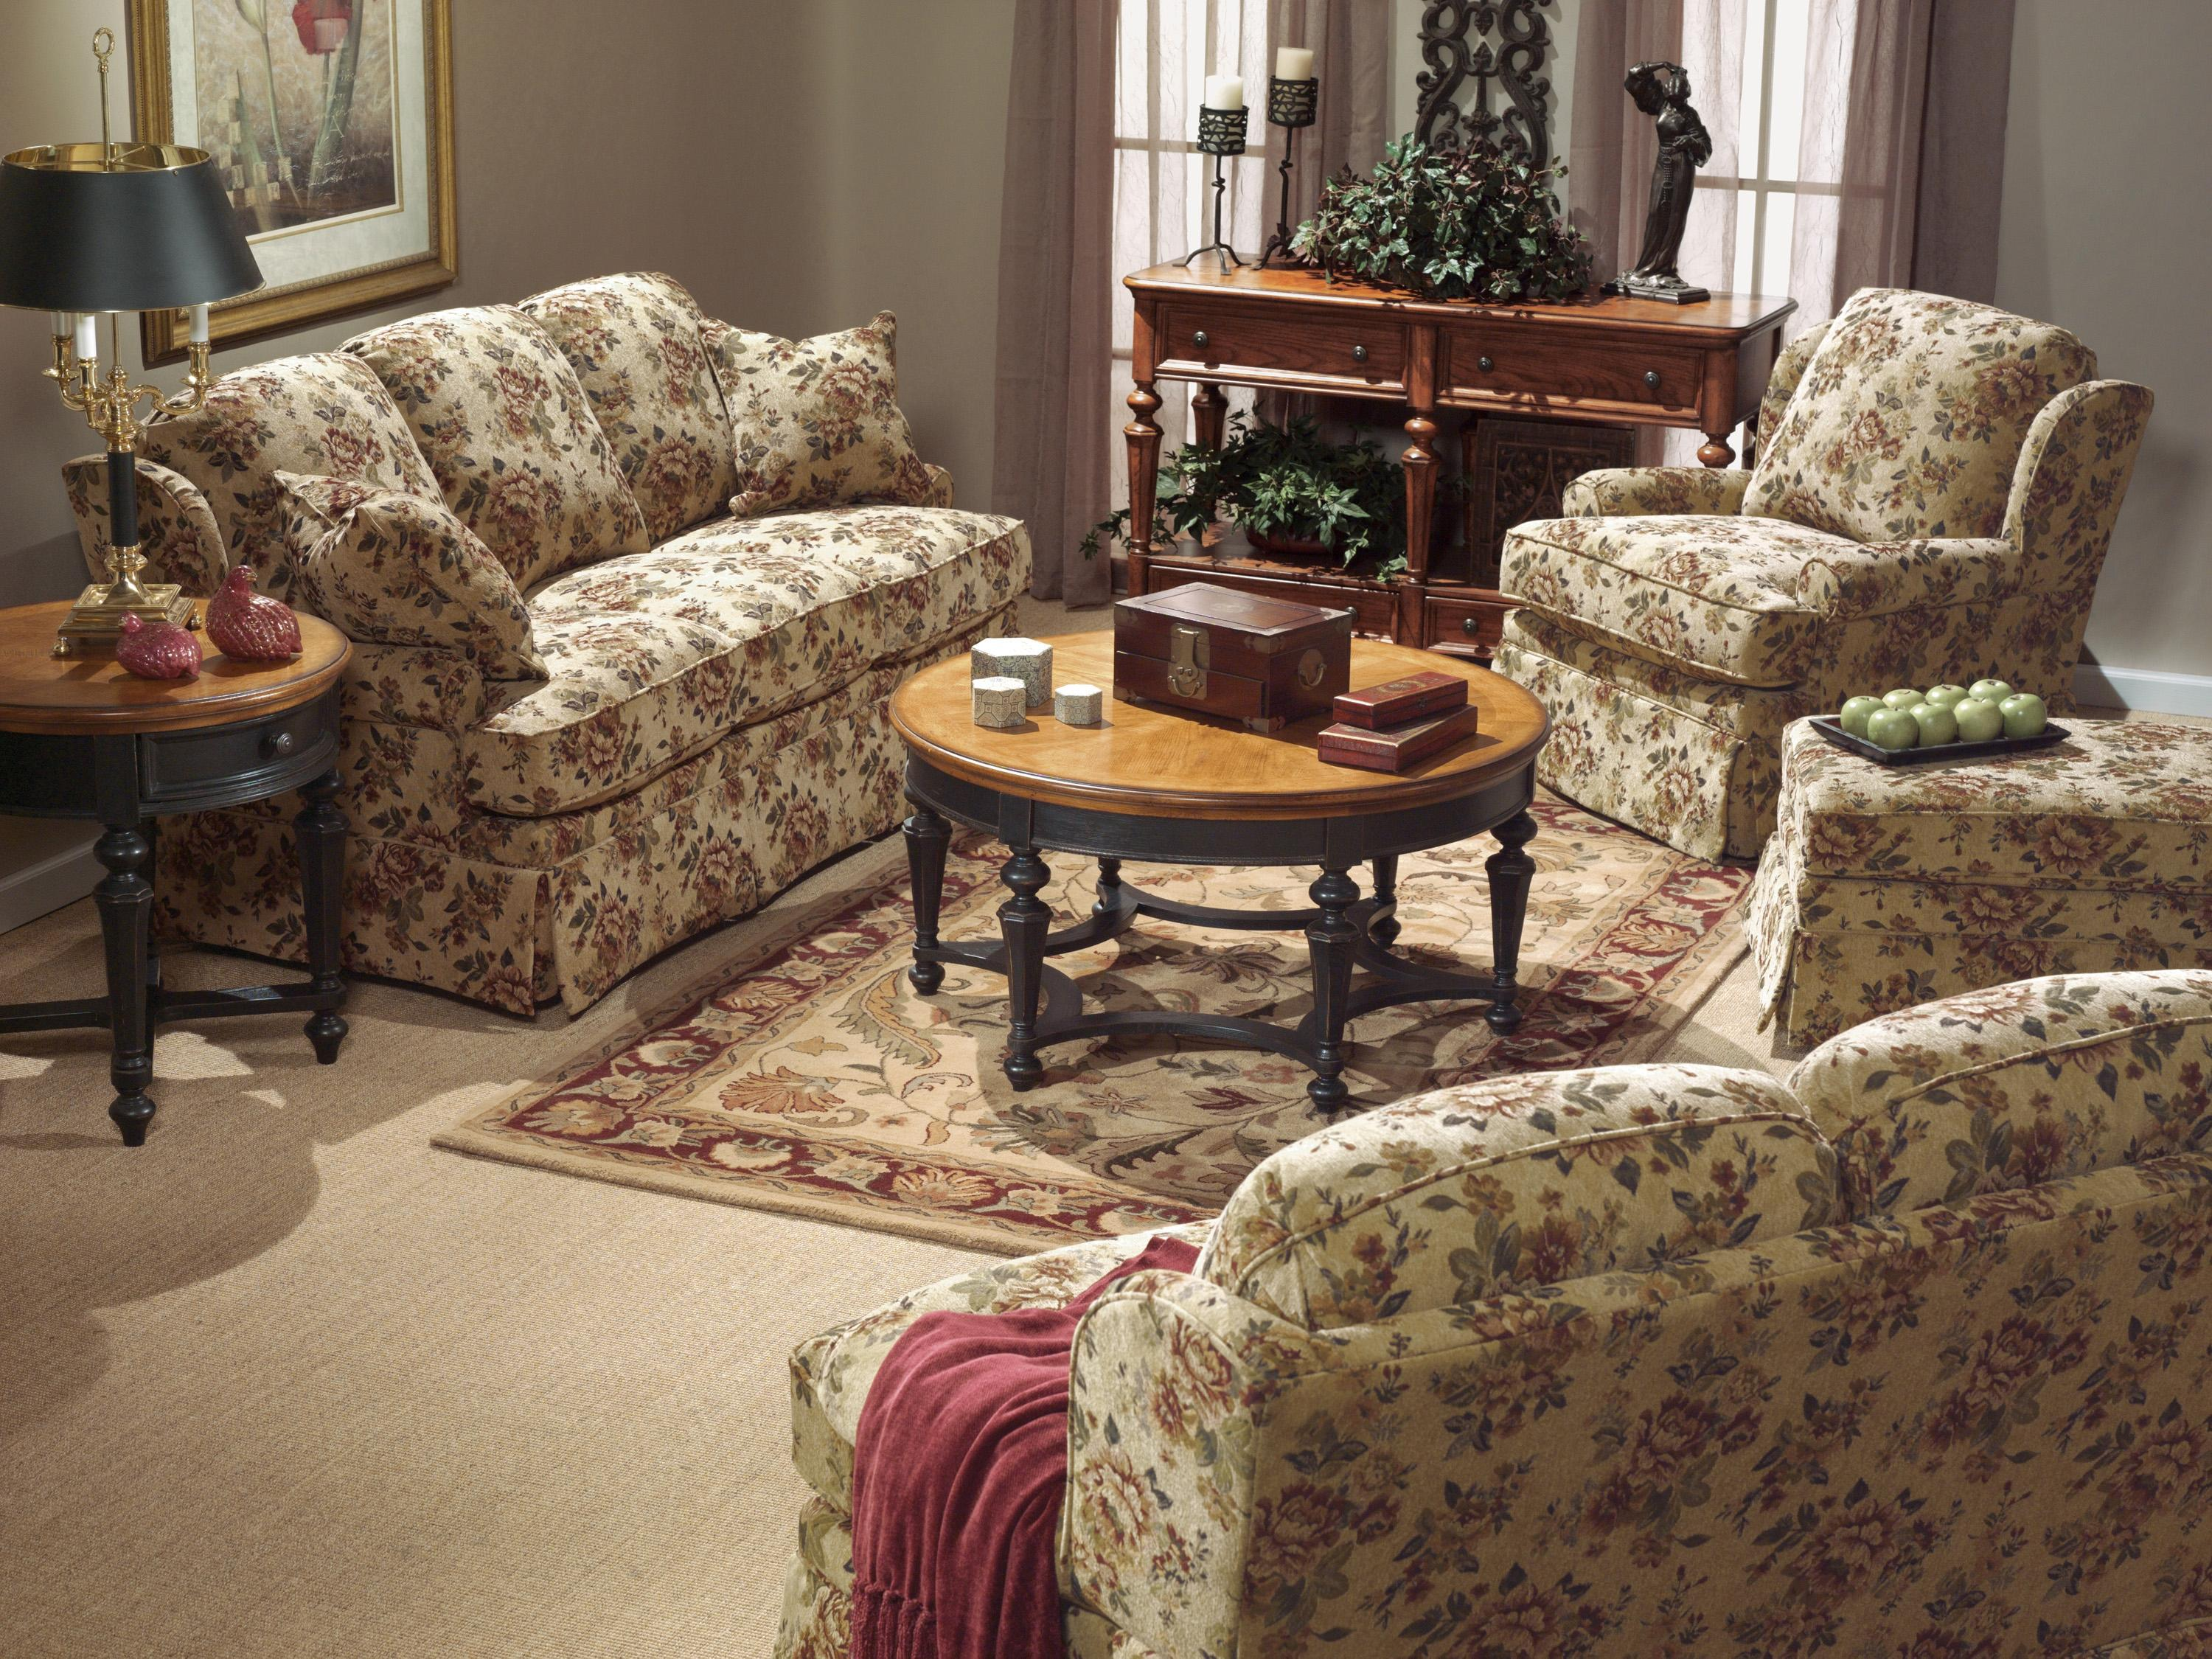 Flexsteel Danville Stationary Living Room Group - Item Number: SOF Living Room Group 1